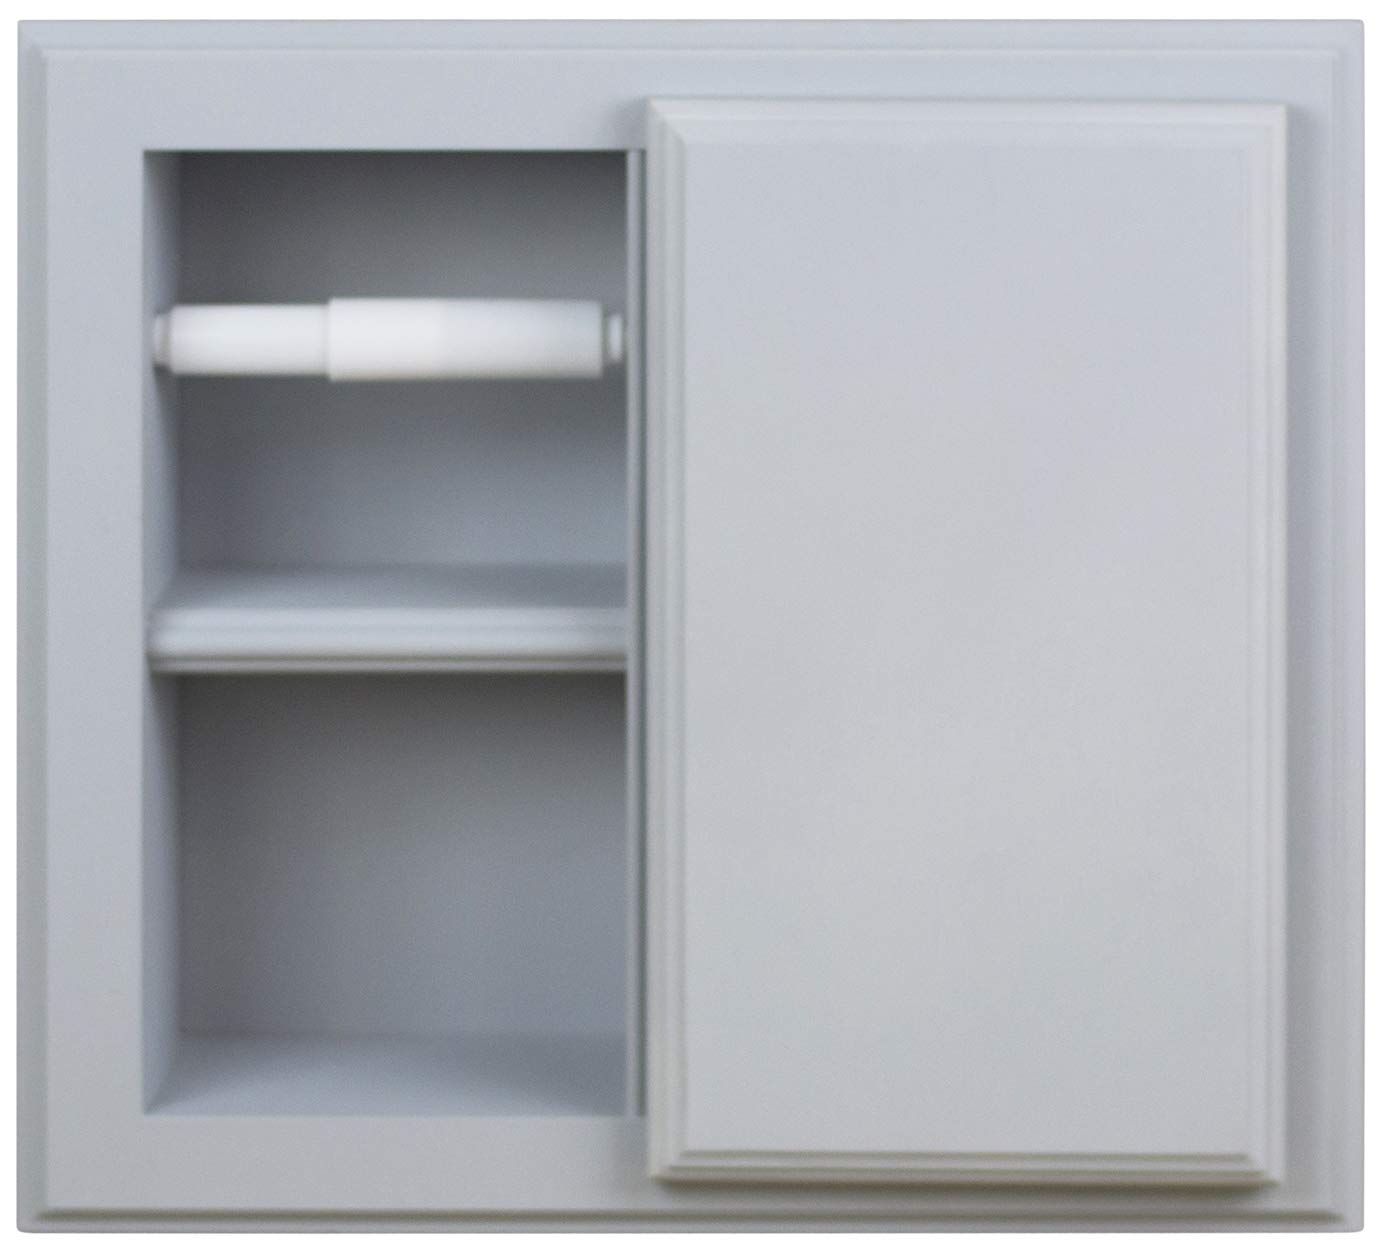 Wood Cabinets Direct Havana Toilet Paper Holder, Primed Ready to Paint